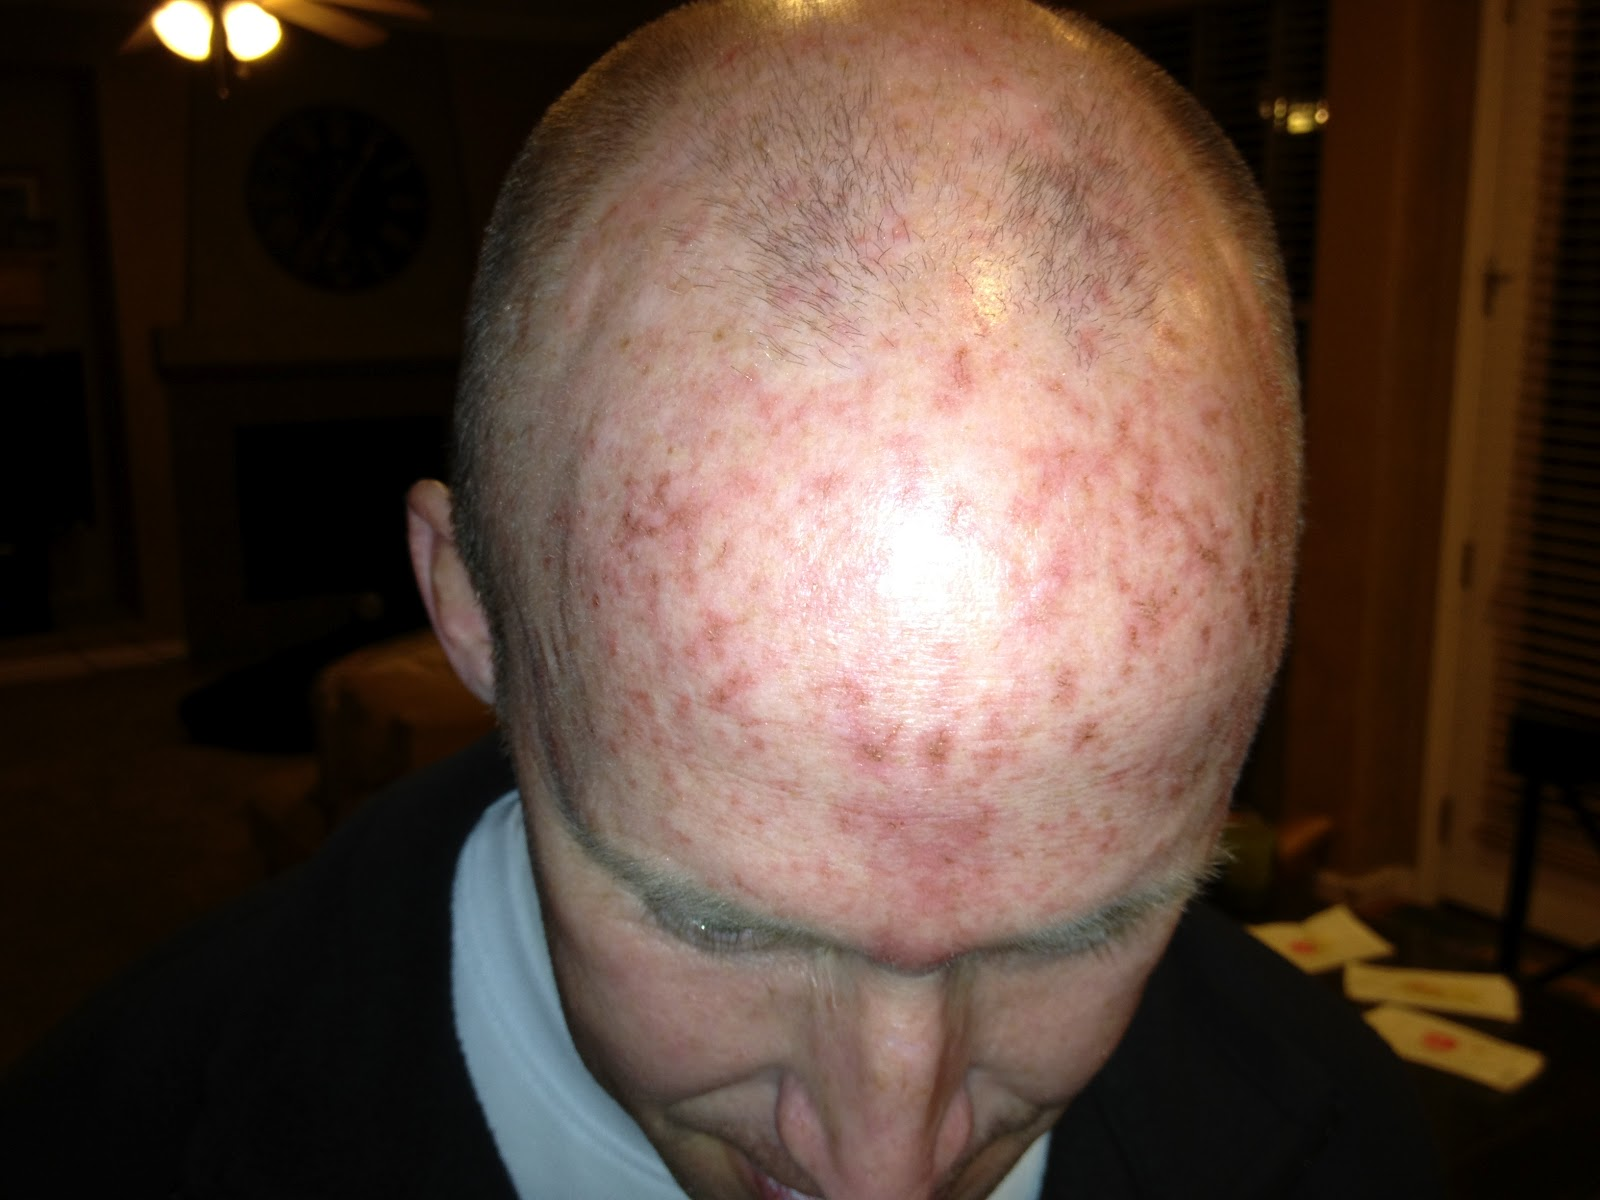 Heads Up My Battle With Actinic Keratosis The Virtual